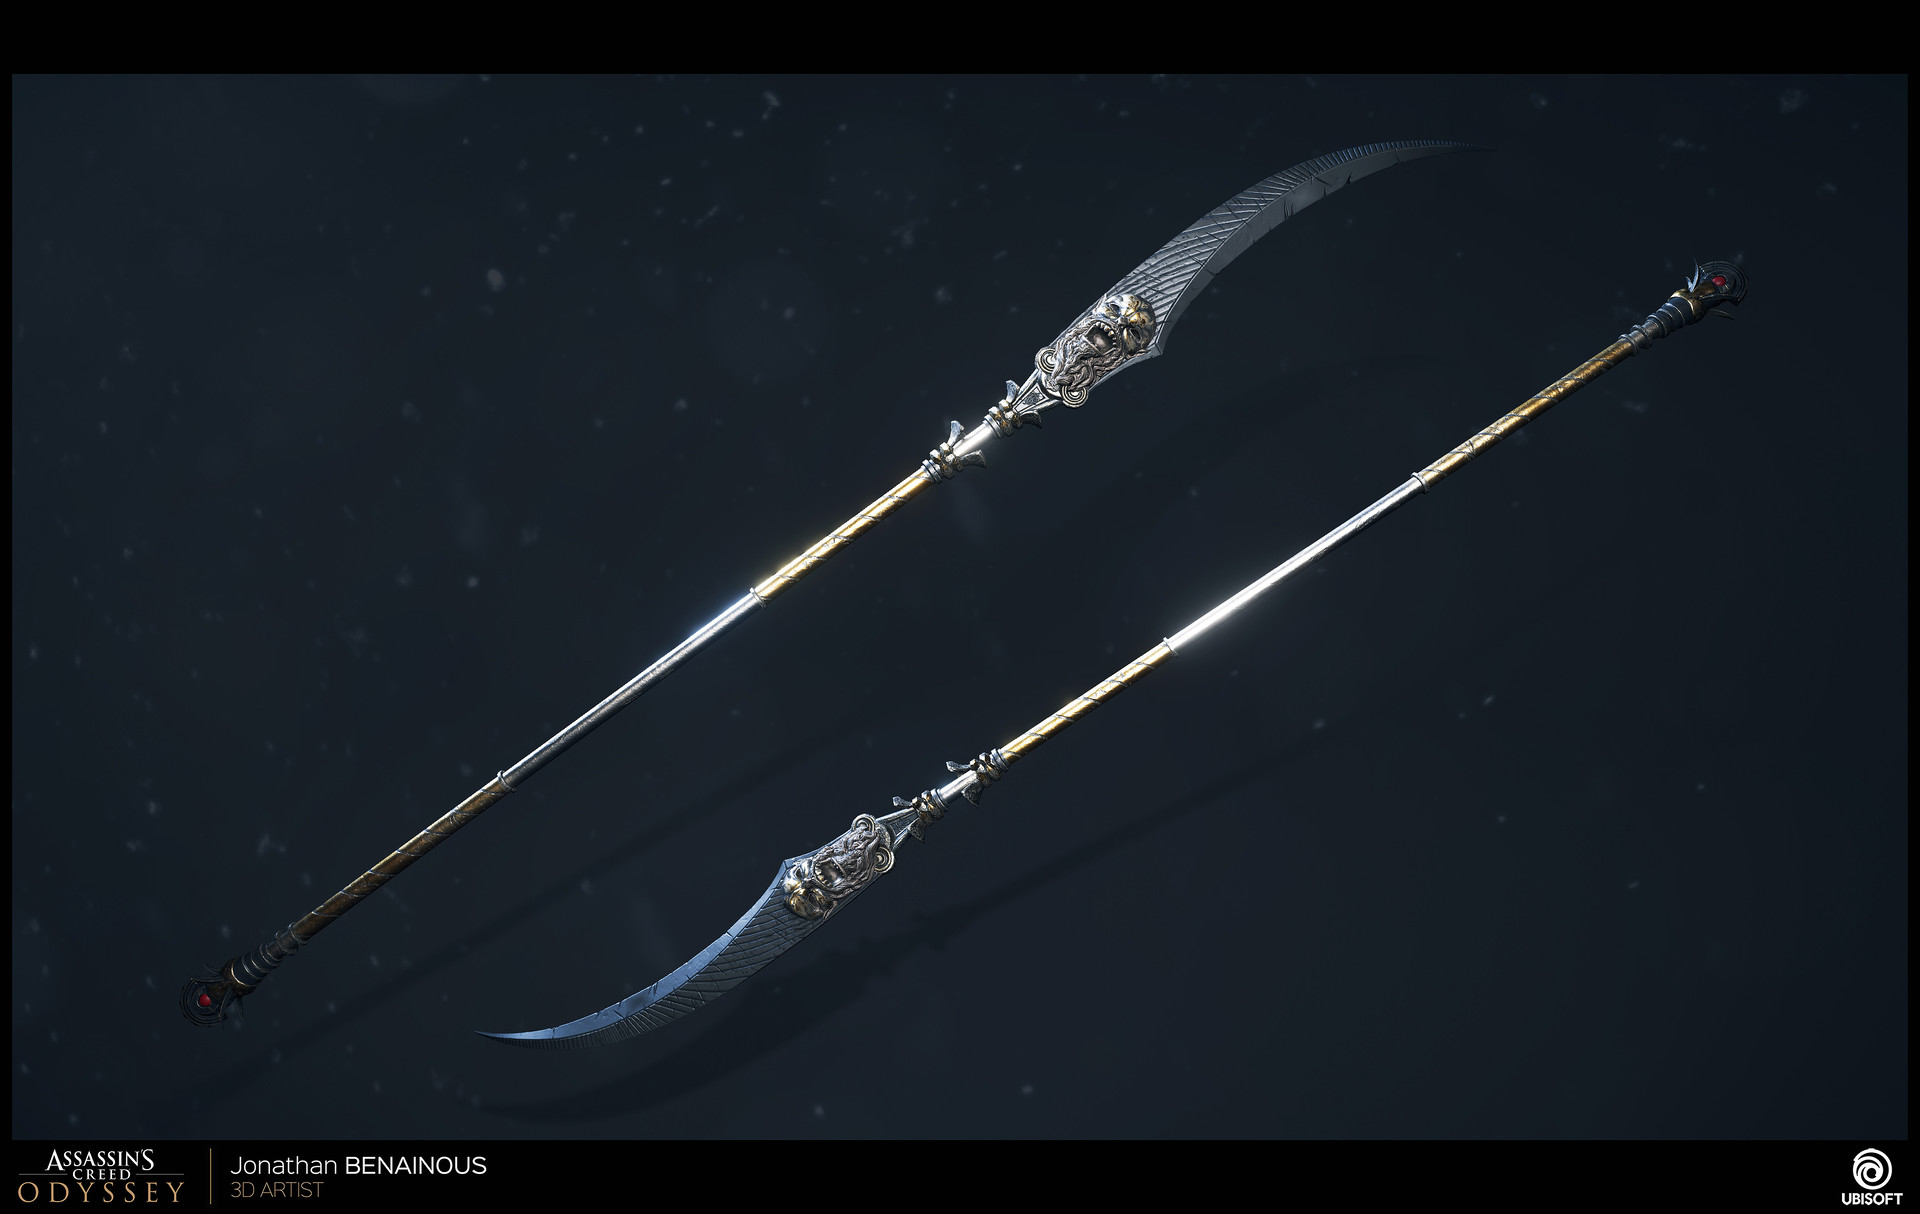 ArtStation - Assassin's Creed Odyssey - Weapon Creation - by